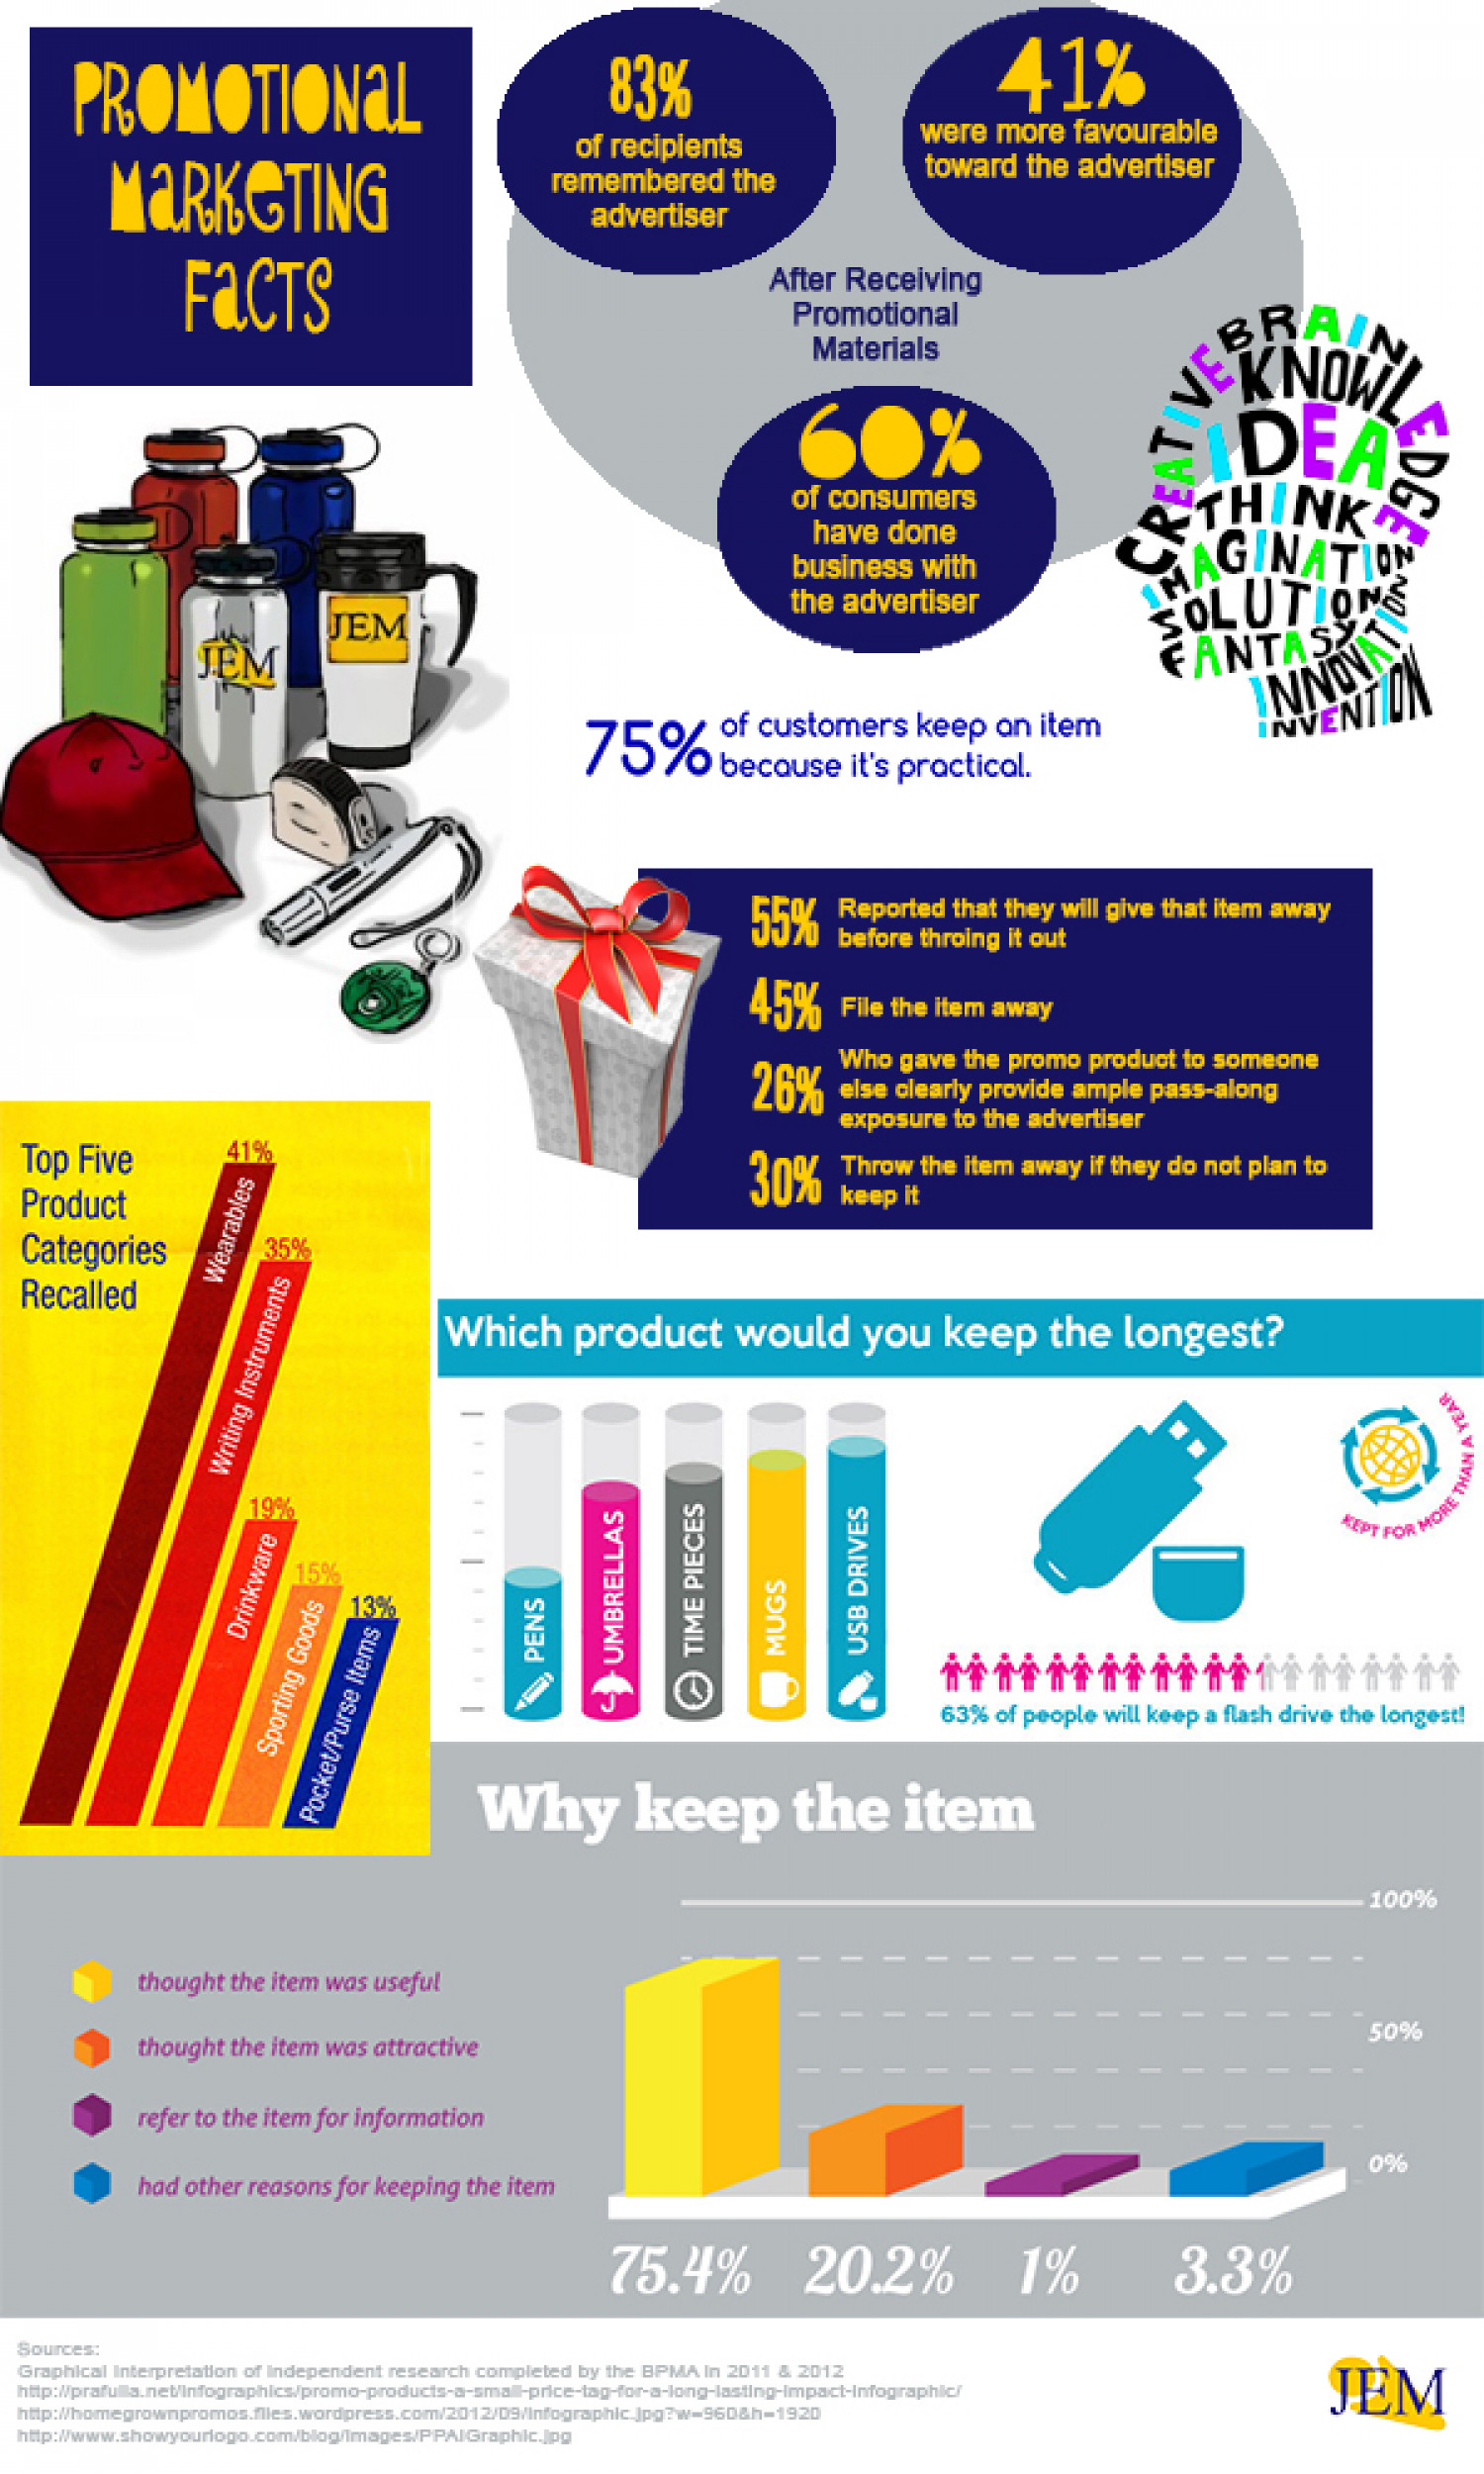 Promotional Marketing Facts Infographic